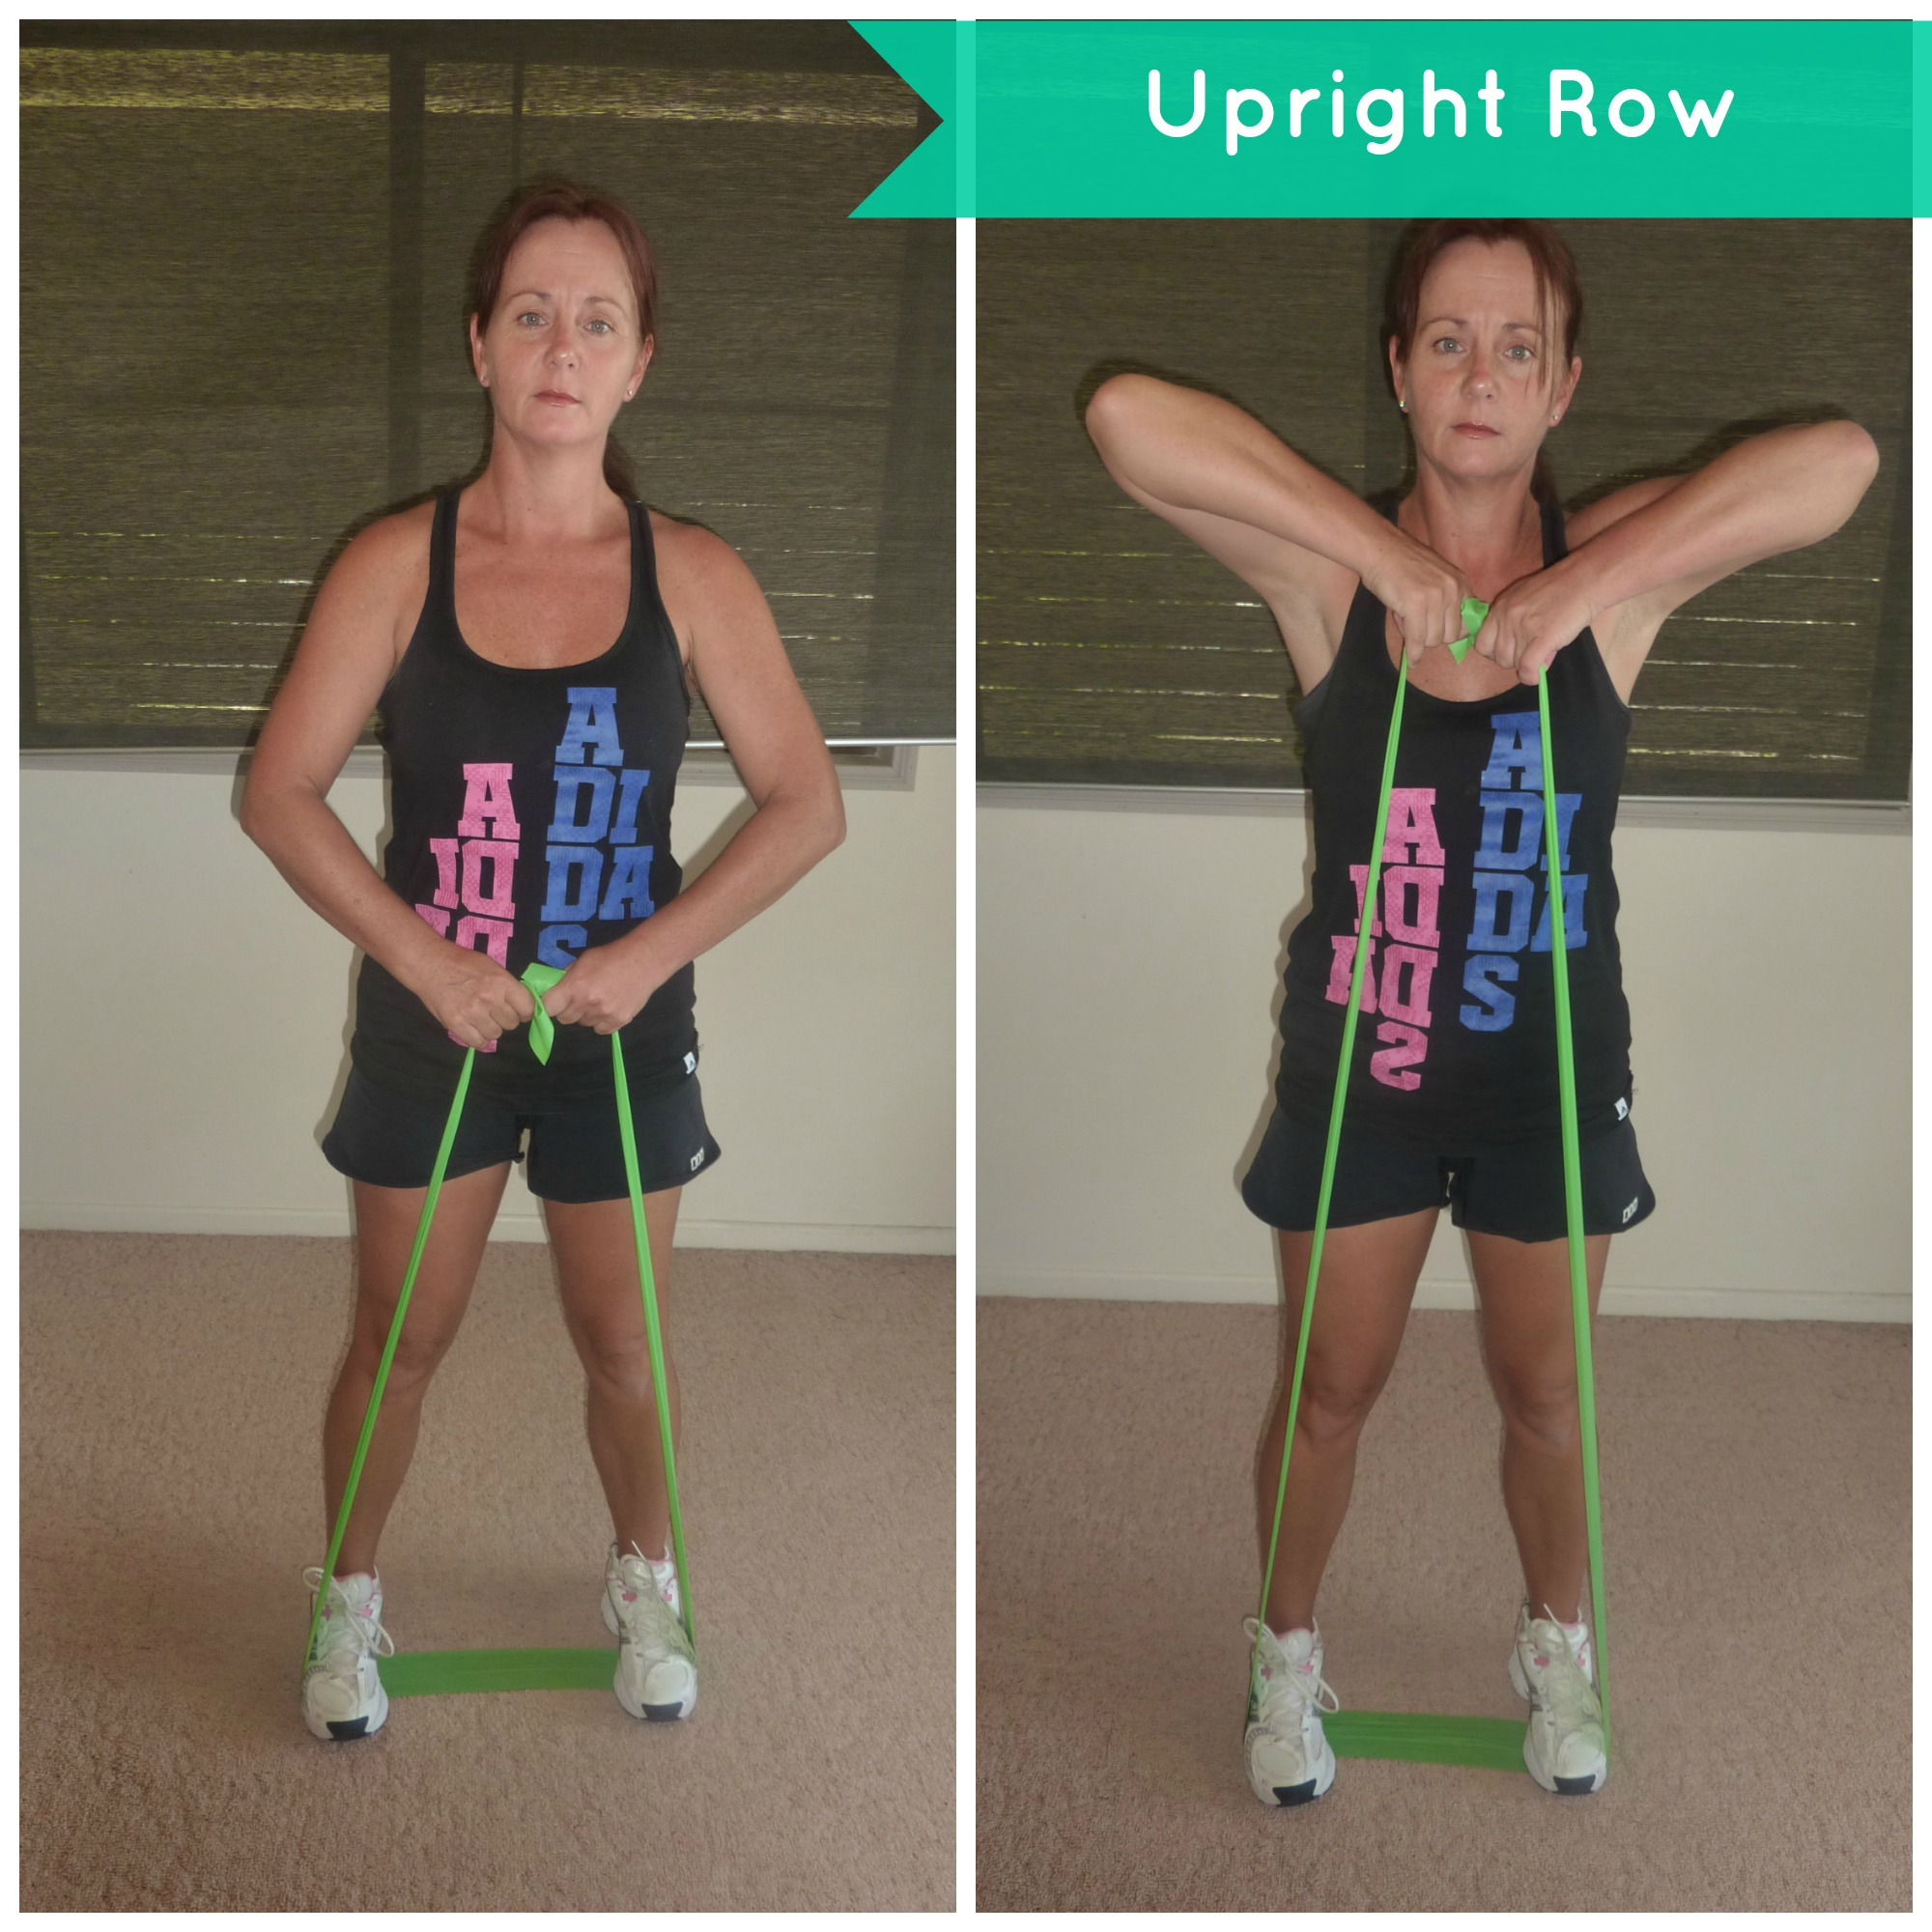 resistance band training upright row